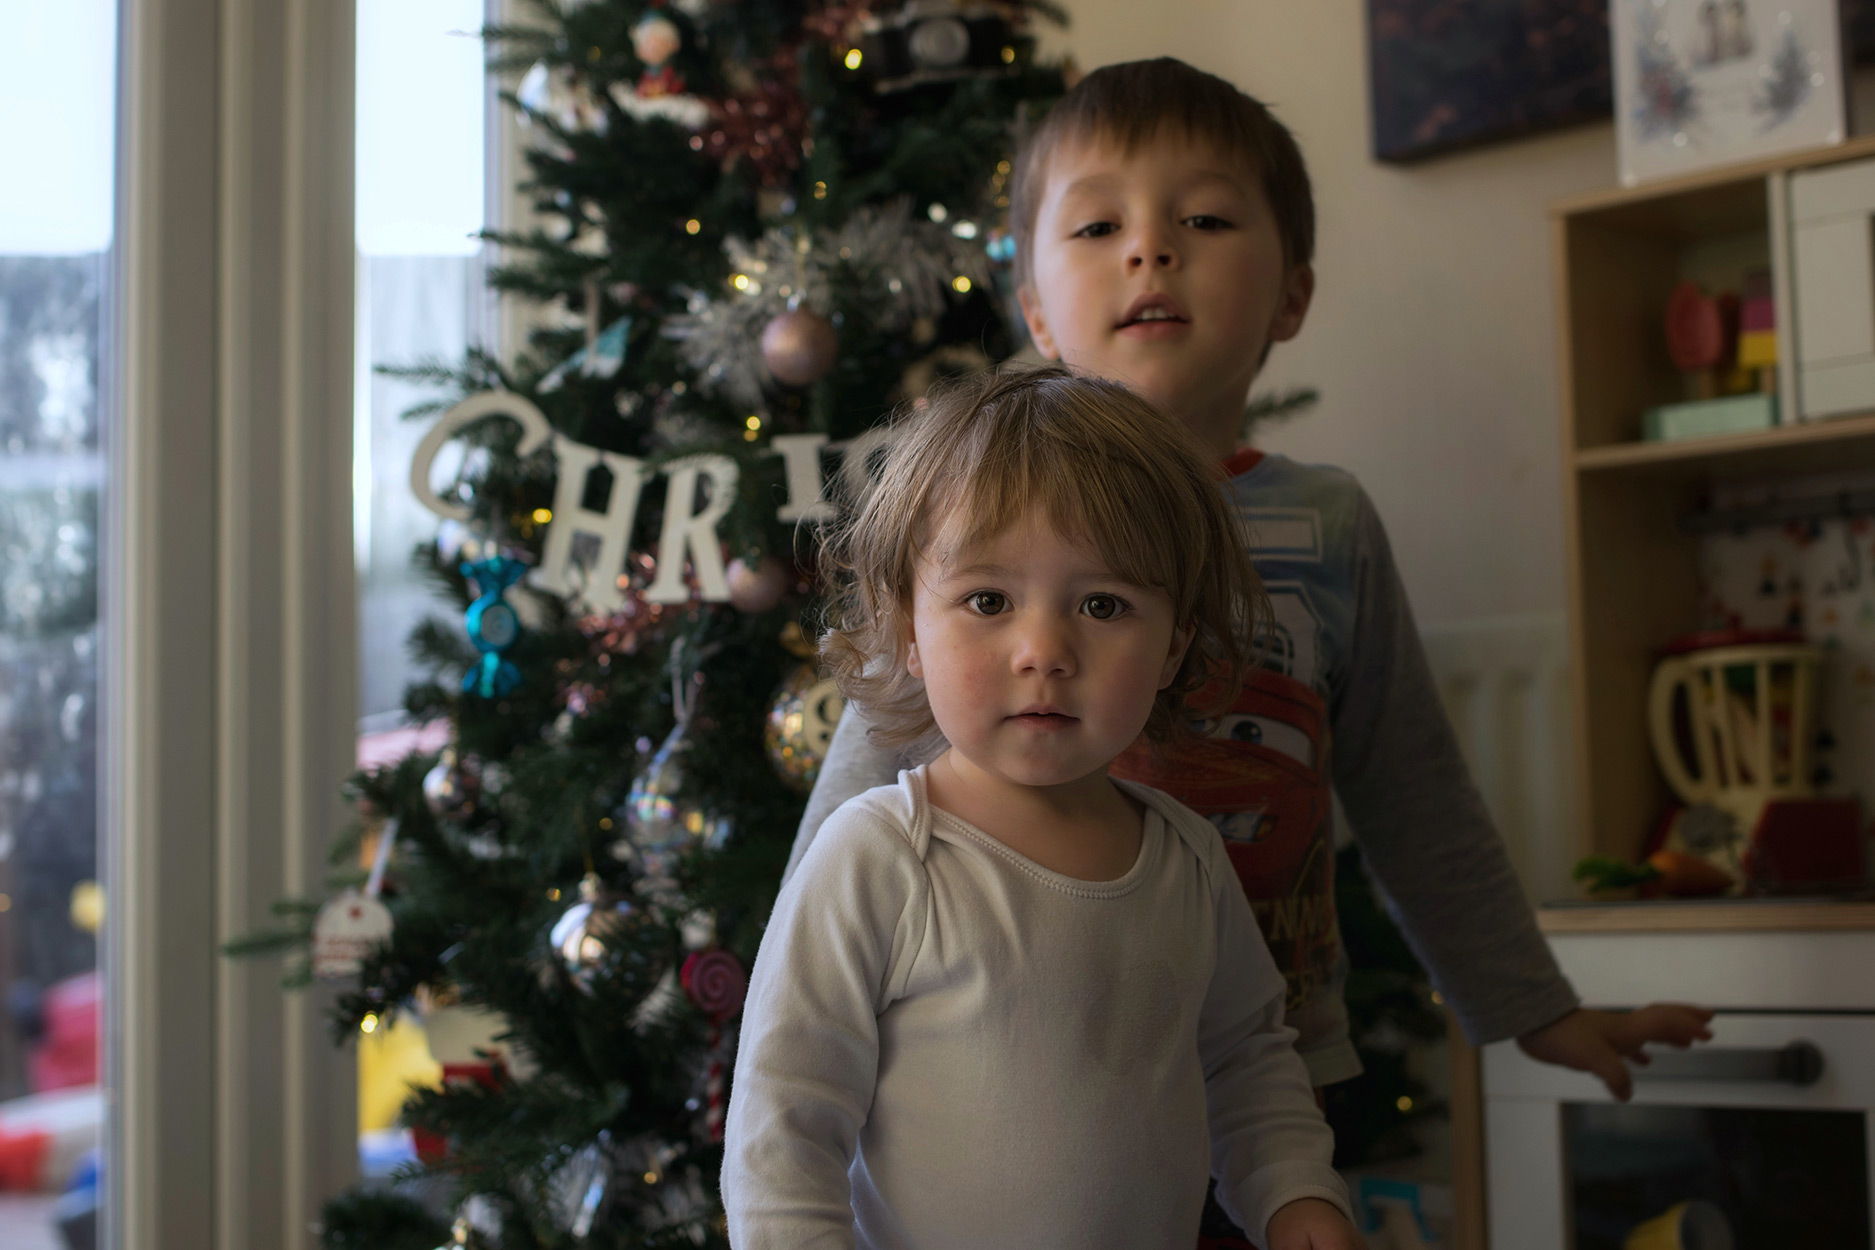 Two brothers standing in front of Christmas tree in December, cuddling and laughing, candid photography taken on Nikon D3300